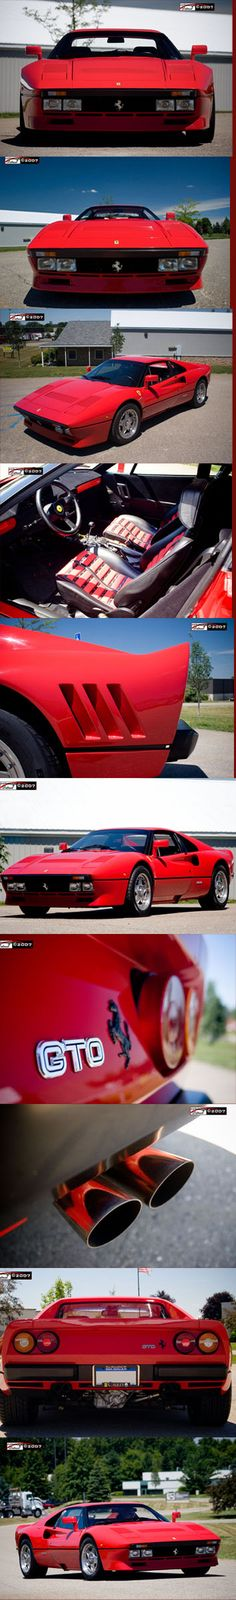 Ferrari 288 GTO made in 1984 following the straight and curved lines period of the late 80's